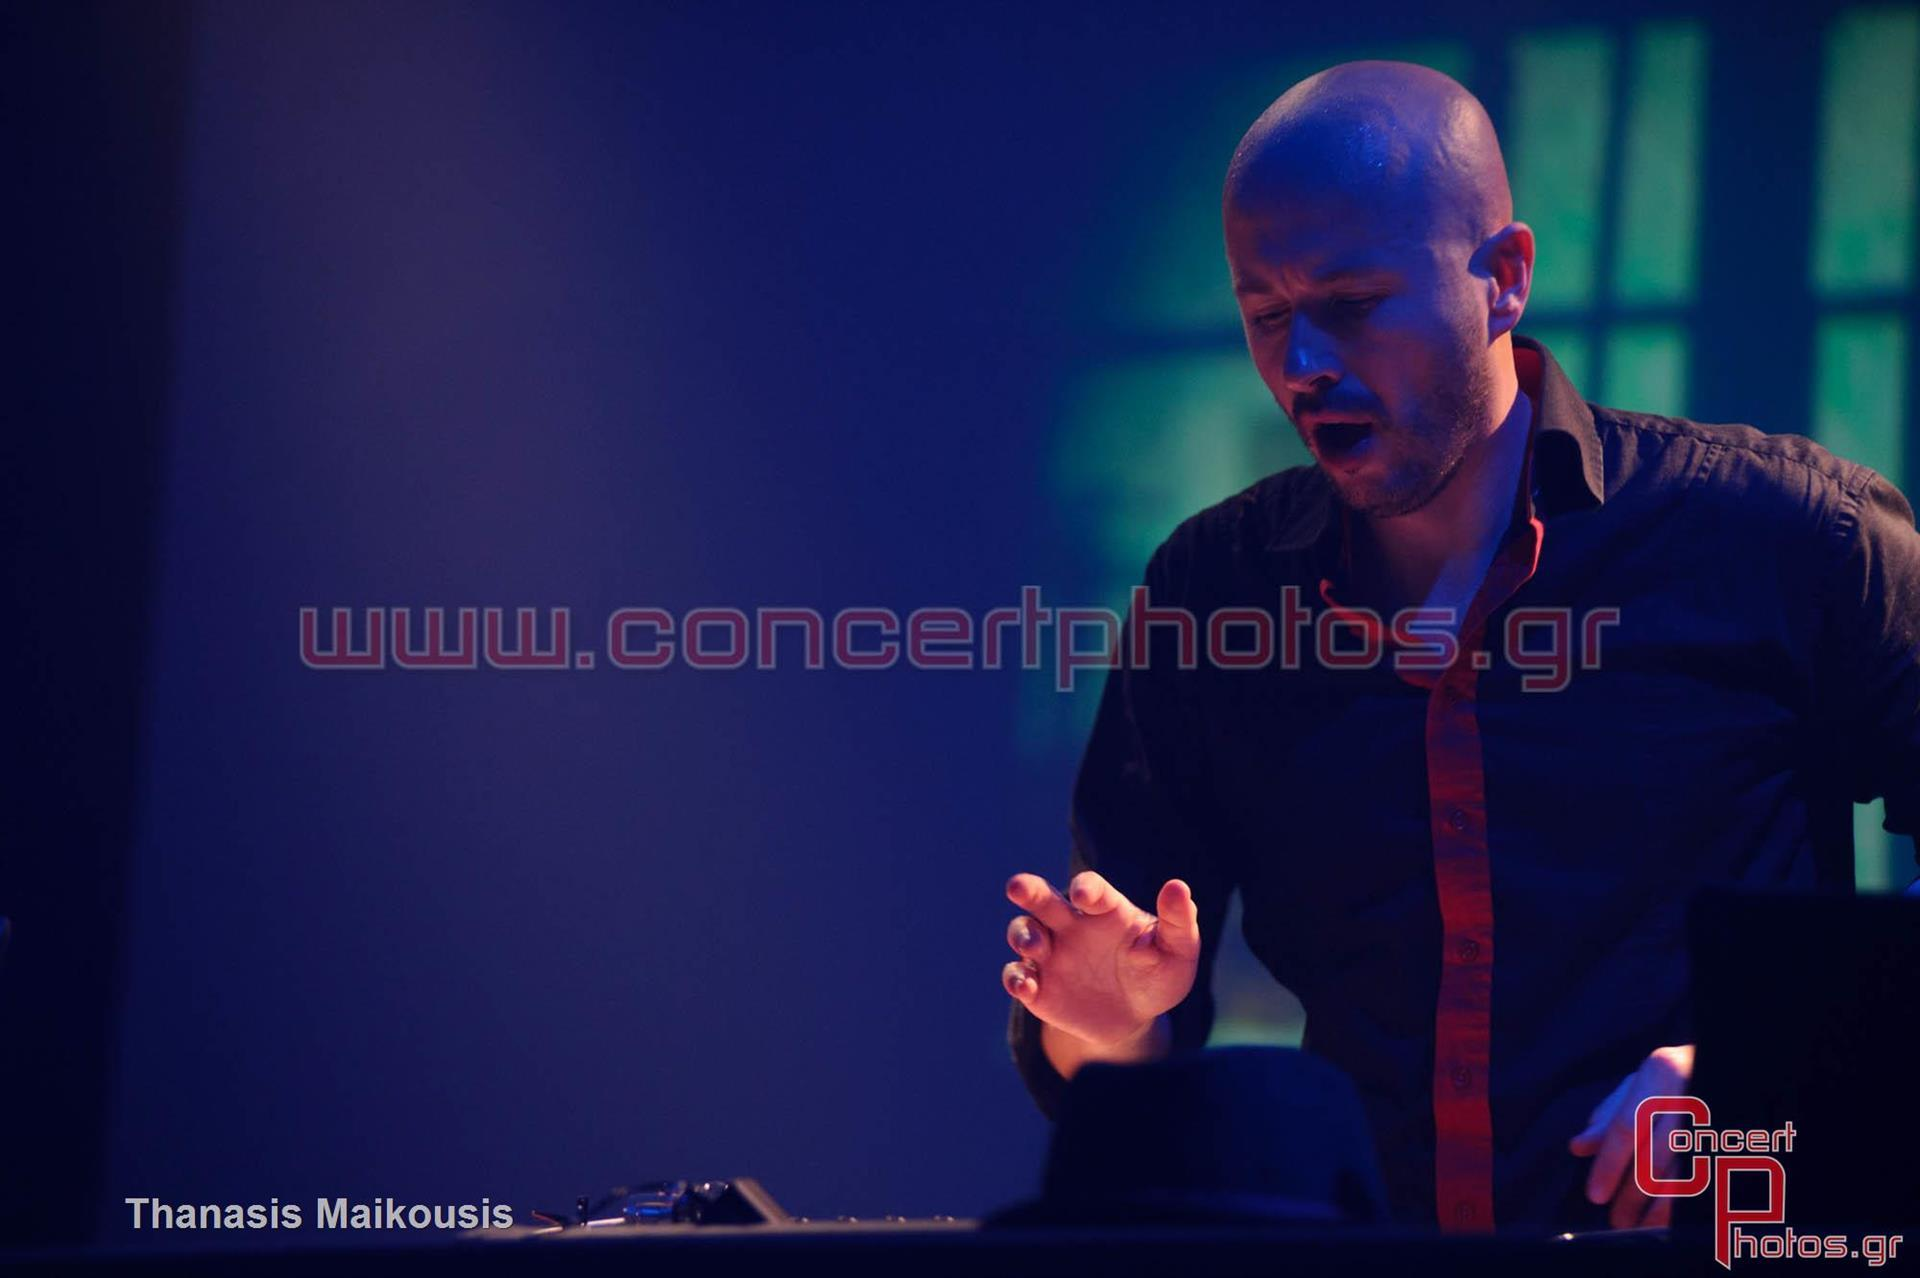 Wax Tailor - photographer: Thanasis Maikousis - ConcertPhotos-7905